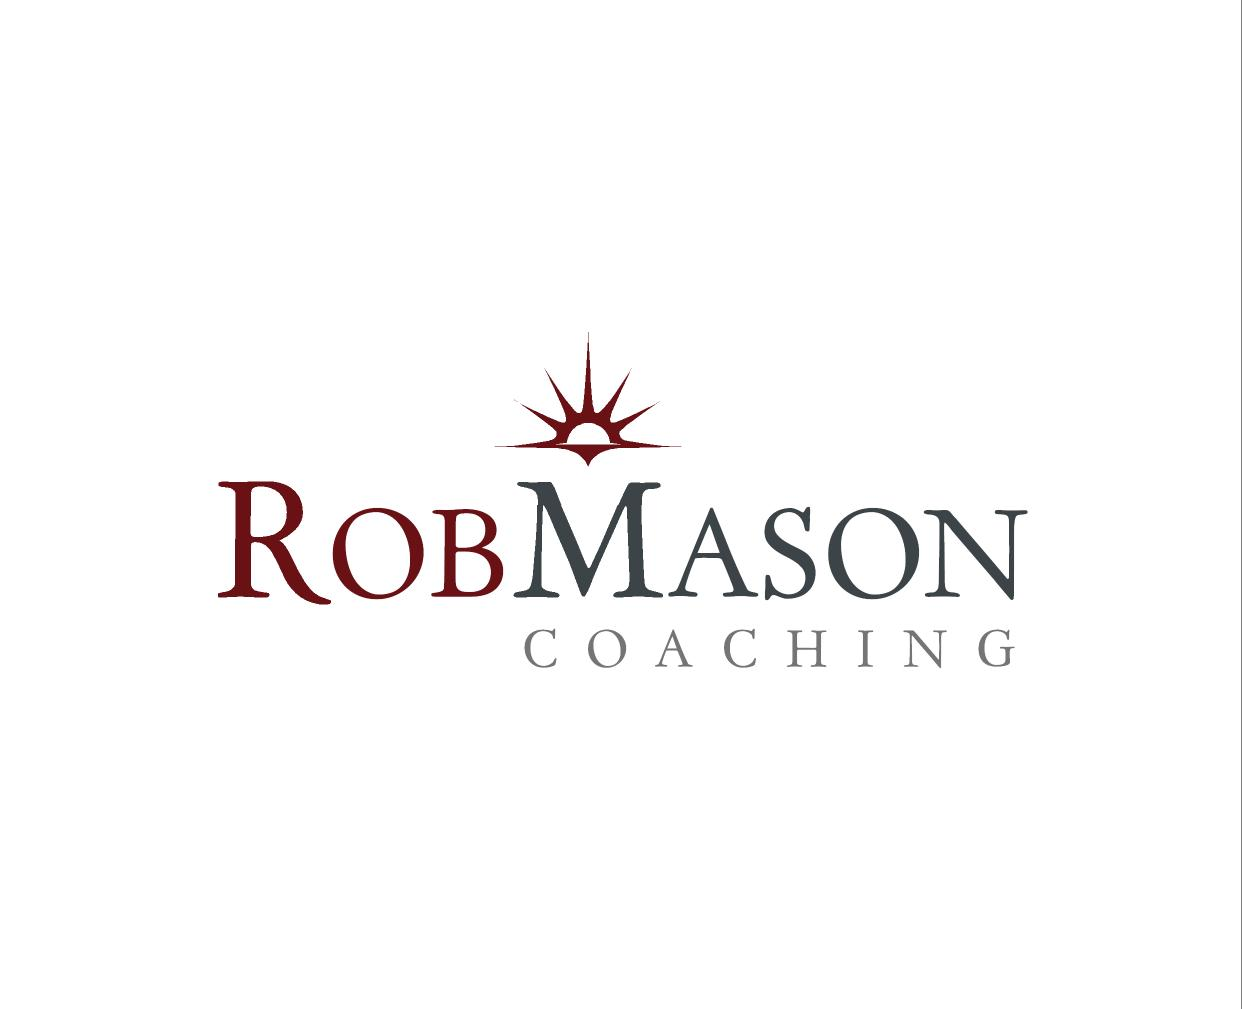 Logo Design by ZAYYADI AHMAD - Entry No. 75 in the Logo Design Contest New Logo Design Needed for Exciting Company Rob Mason Coaching.